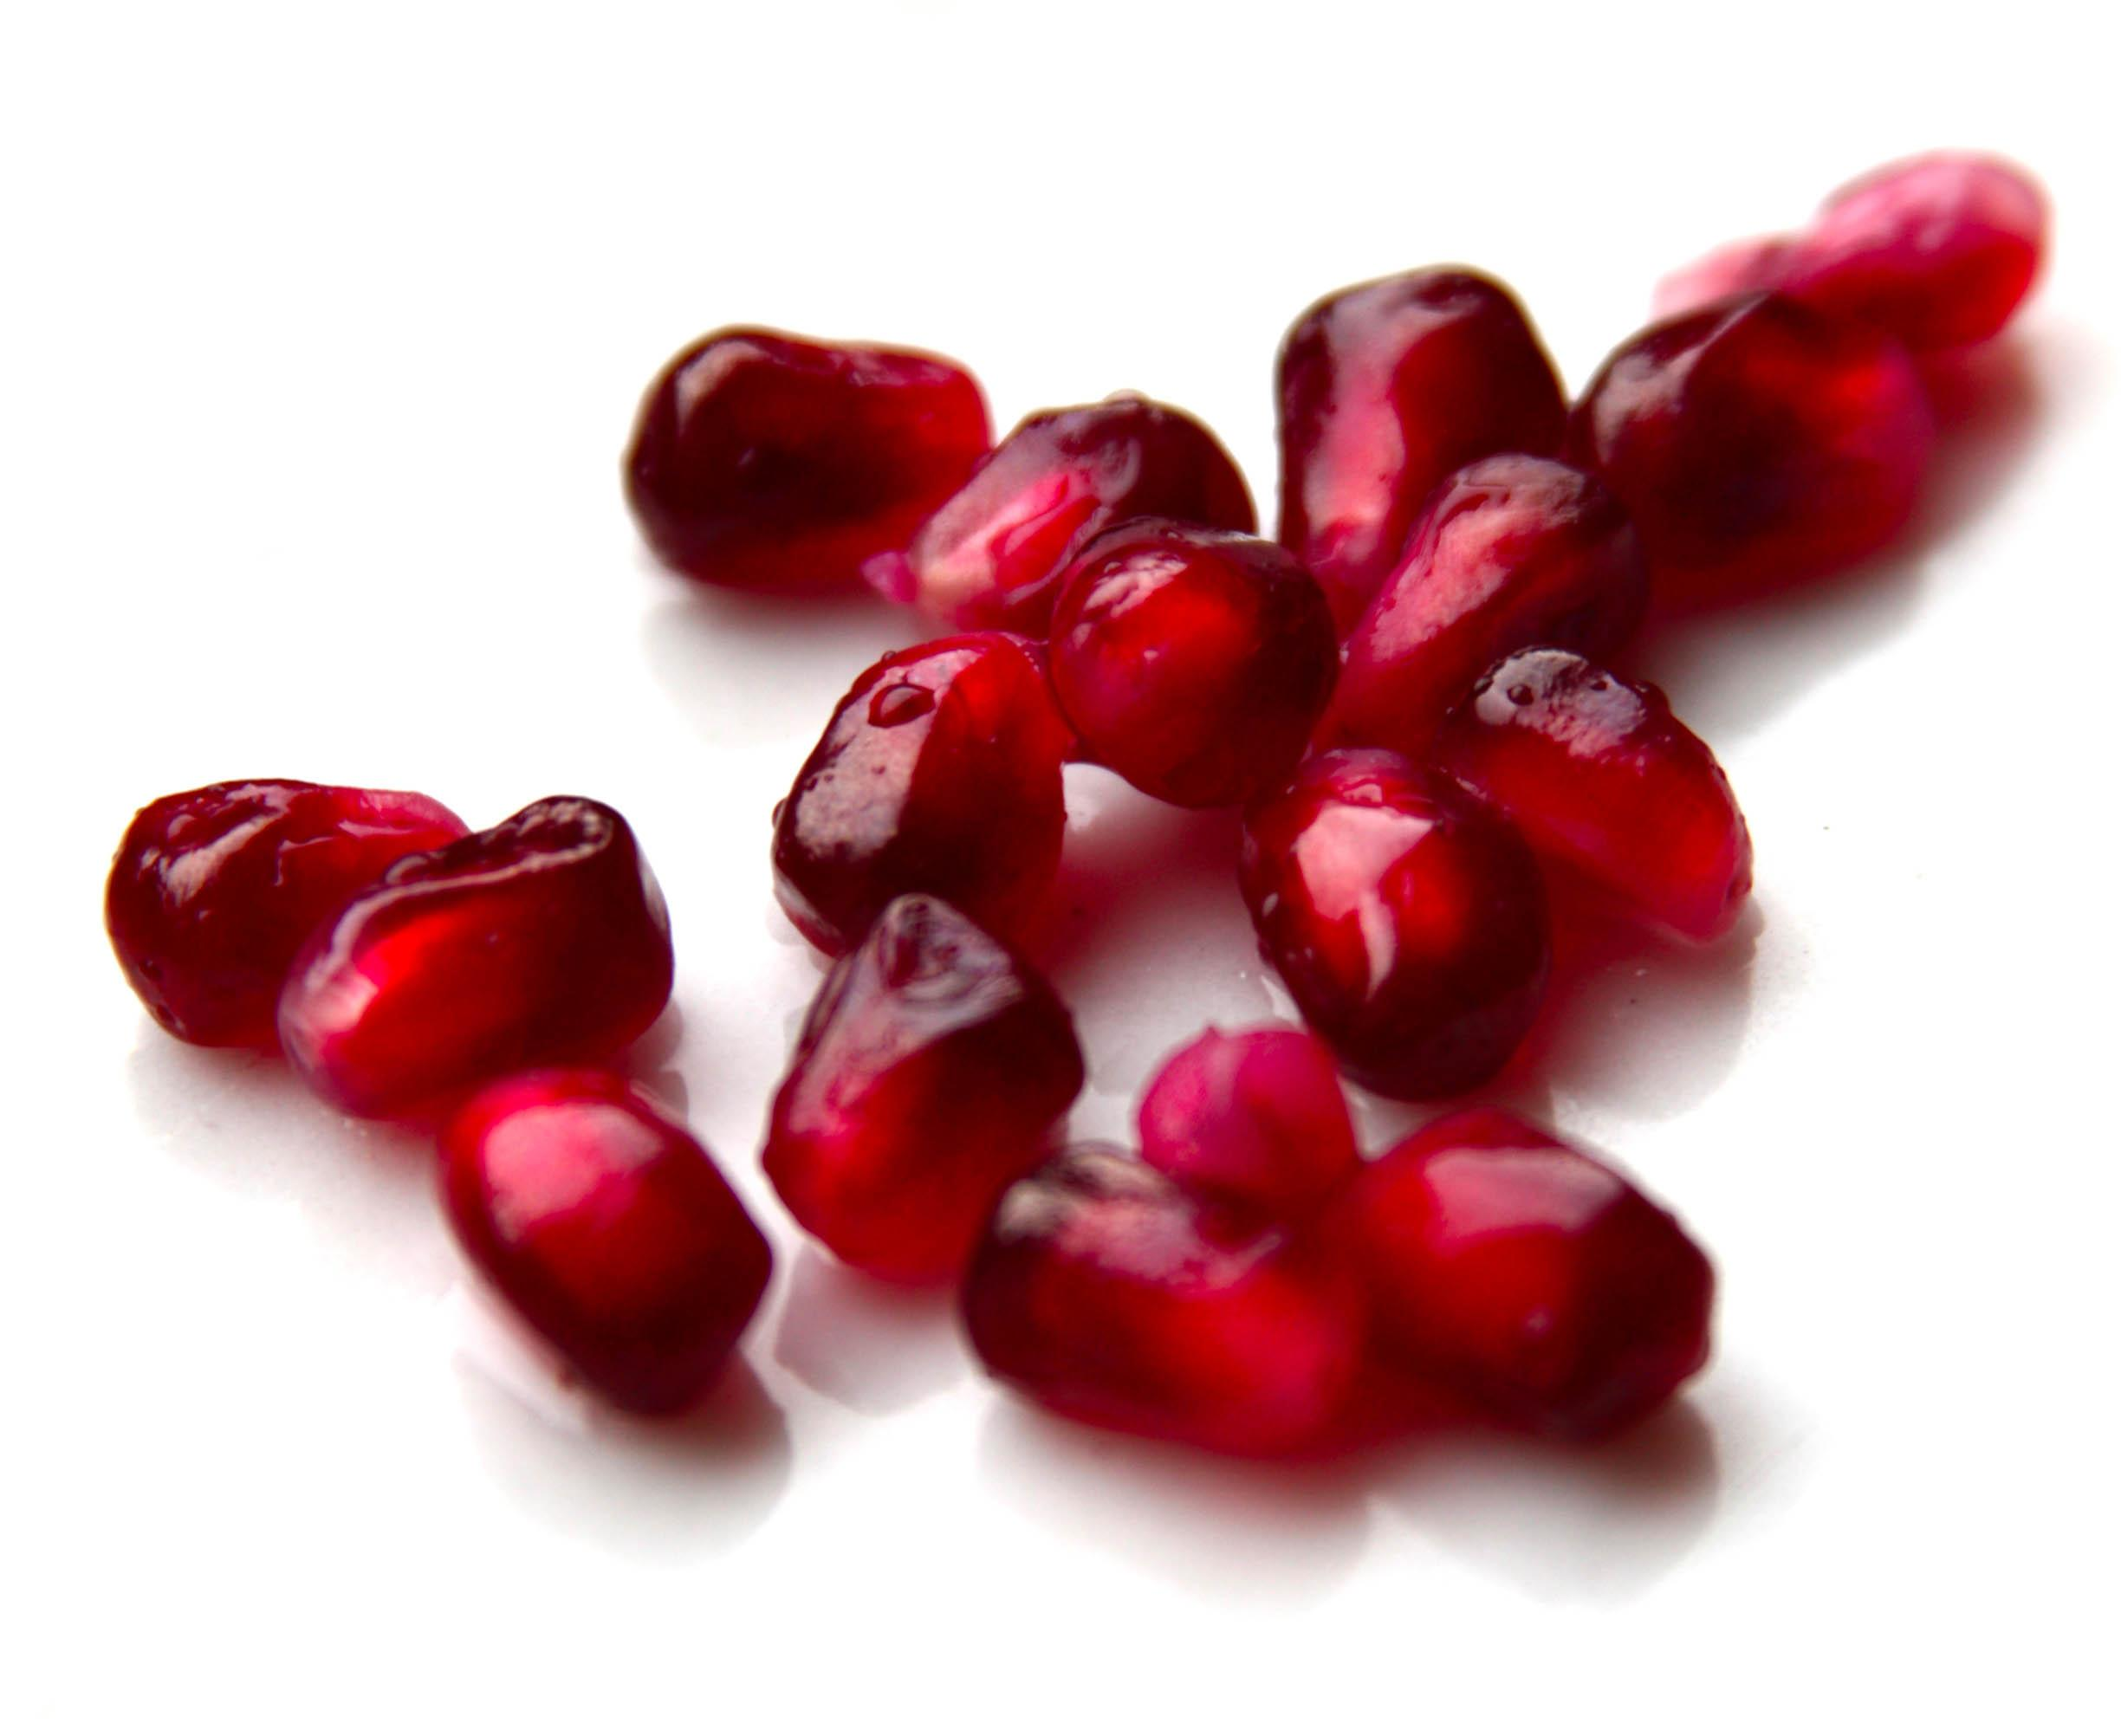 Pomegranate-best food for men